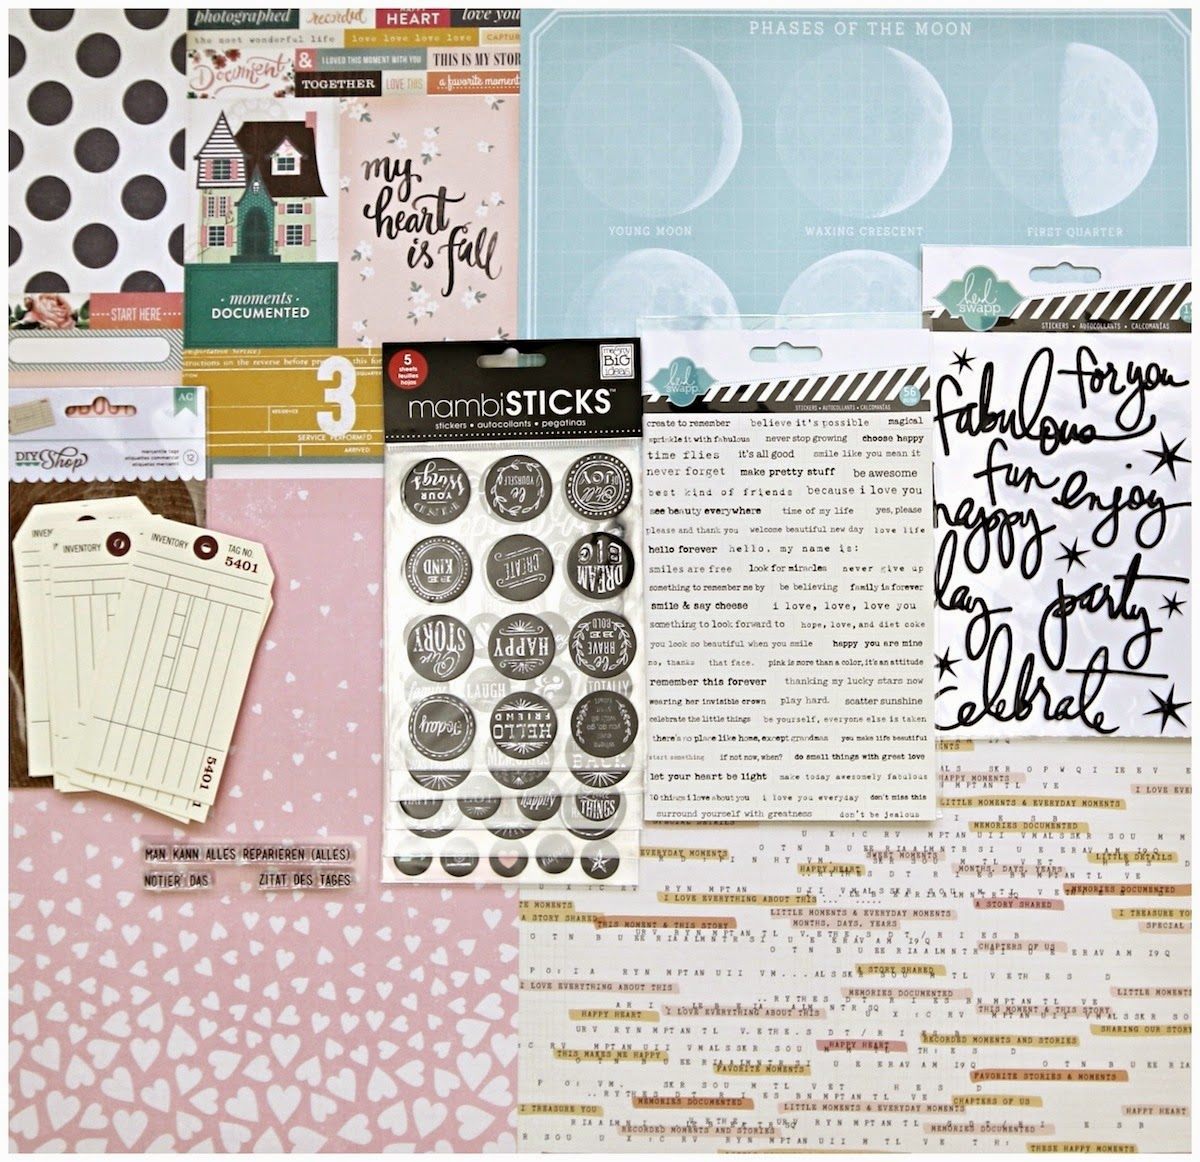 http://www.danipeuss.de/scrapbooking/401-neuheiten/675-neu-im-januar/45003-mini-kit--add-on-februar-2015